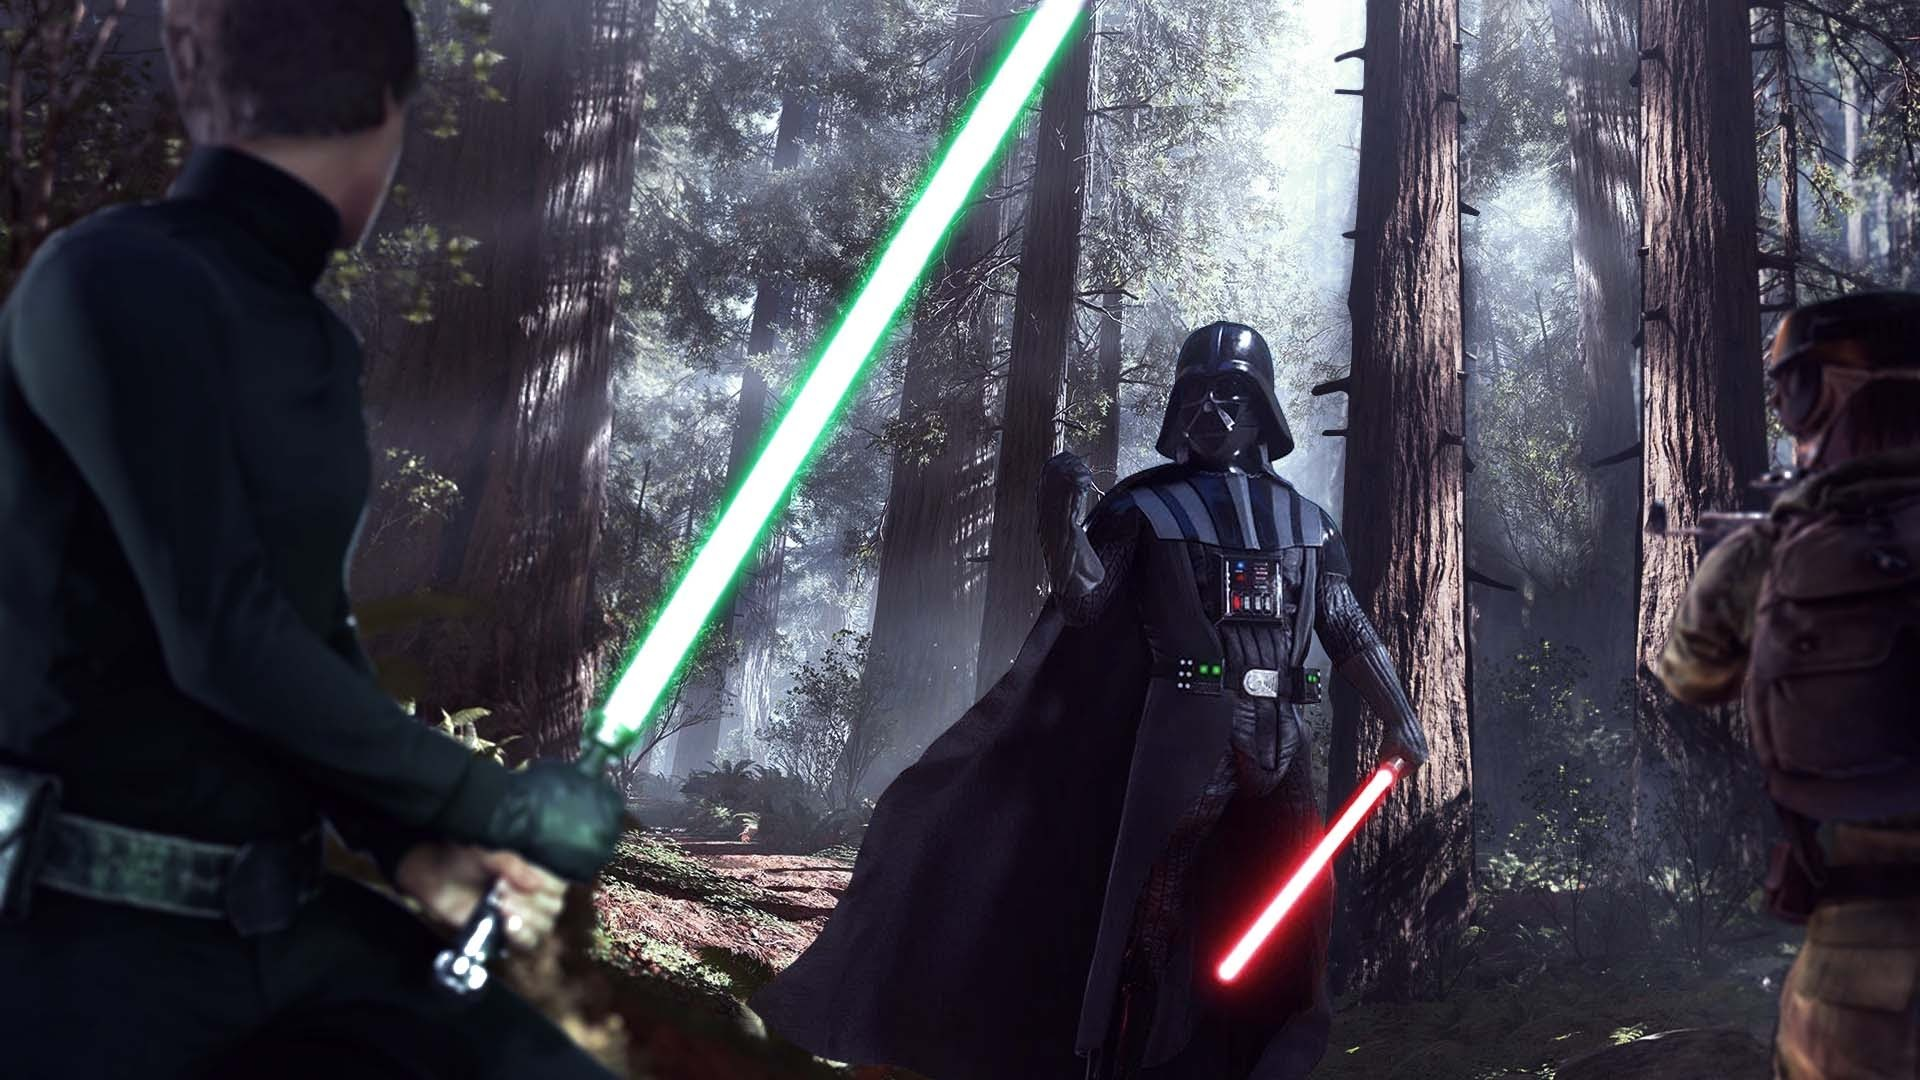 1920x1080 Star Wars Battlefront Luke vs Darth Vader Wallpaper With Download by Gully